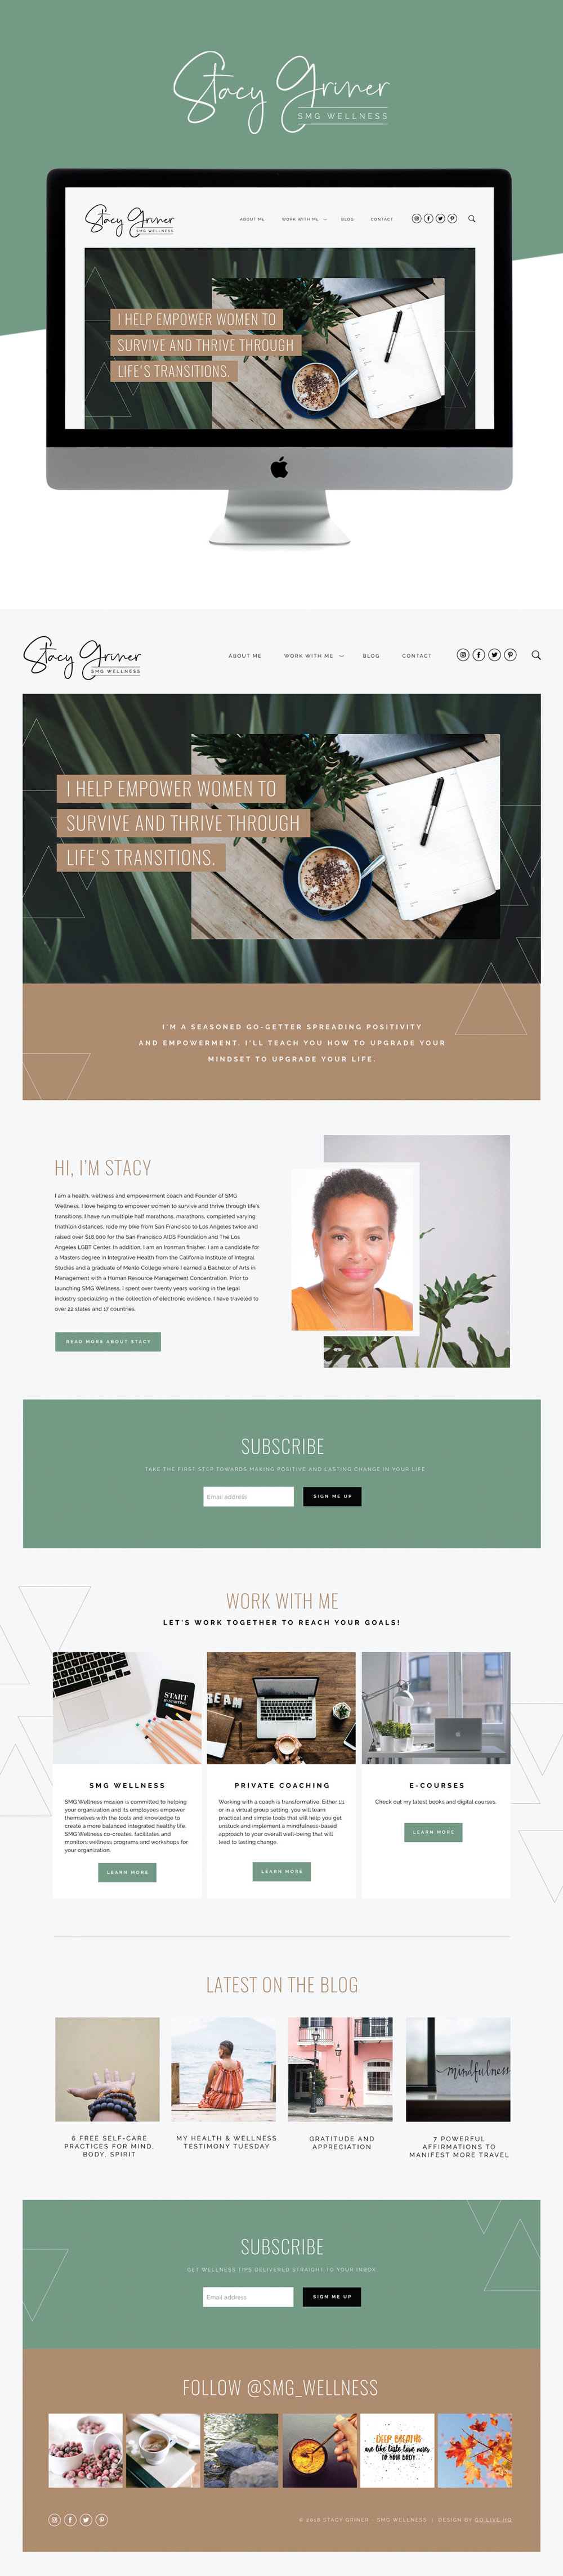 Fun and Professional Website Design for Wellness Business | Design by Go Live HQ